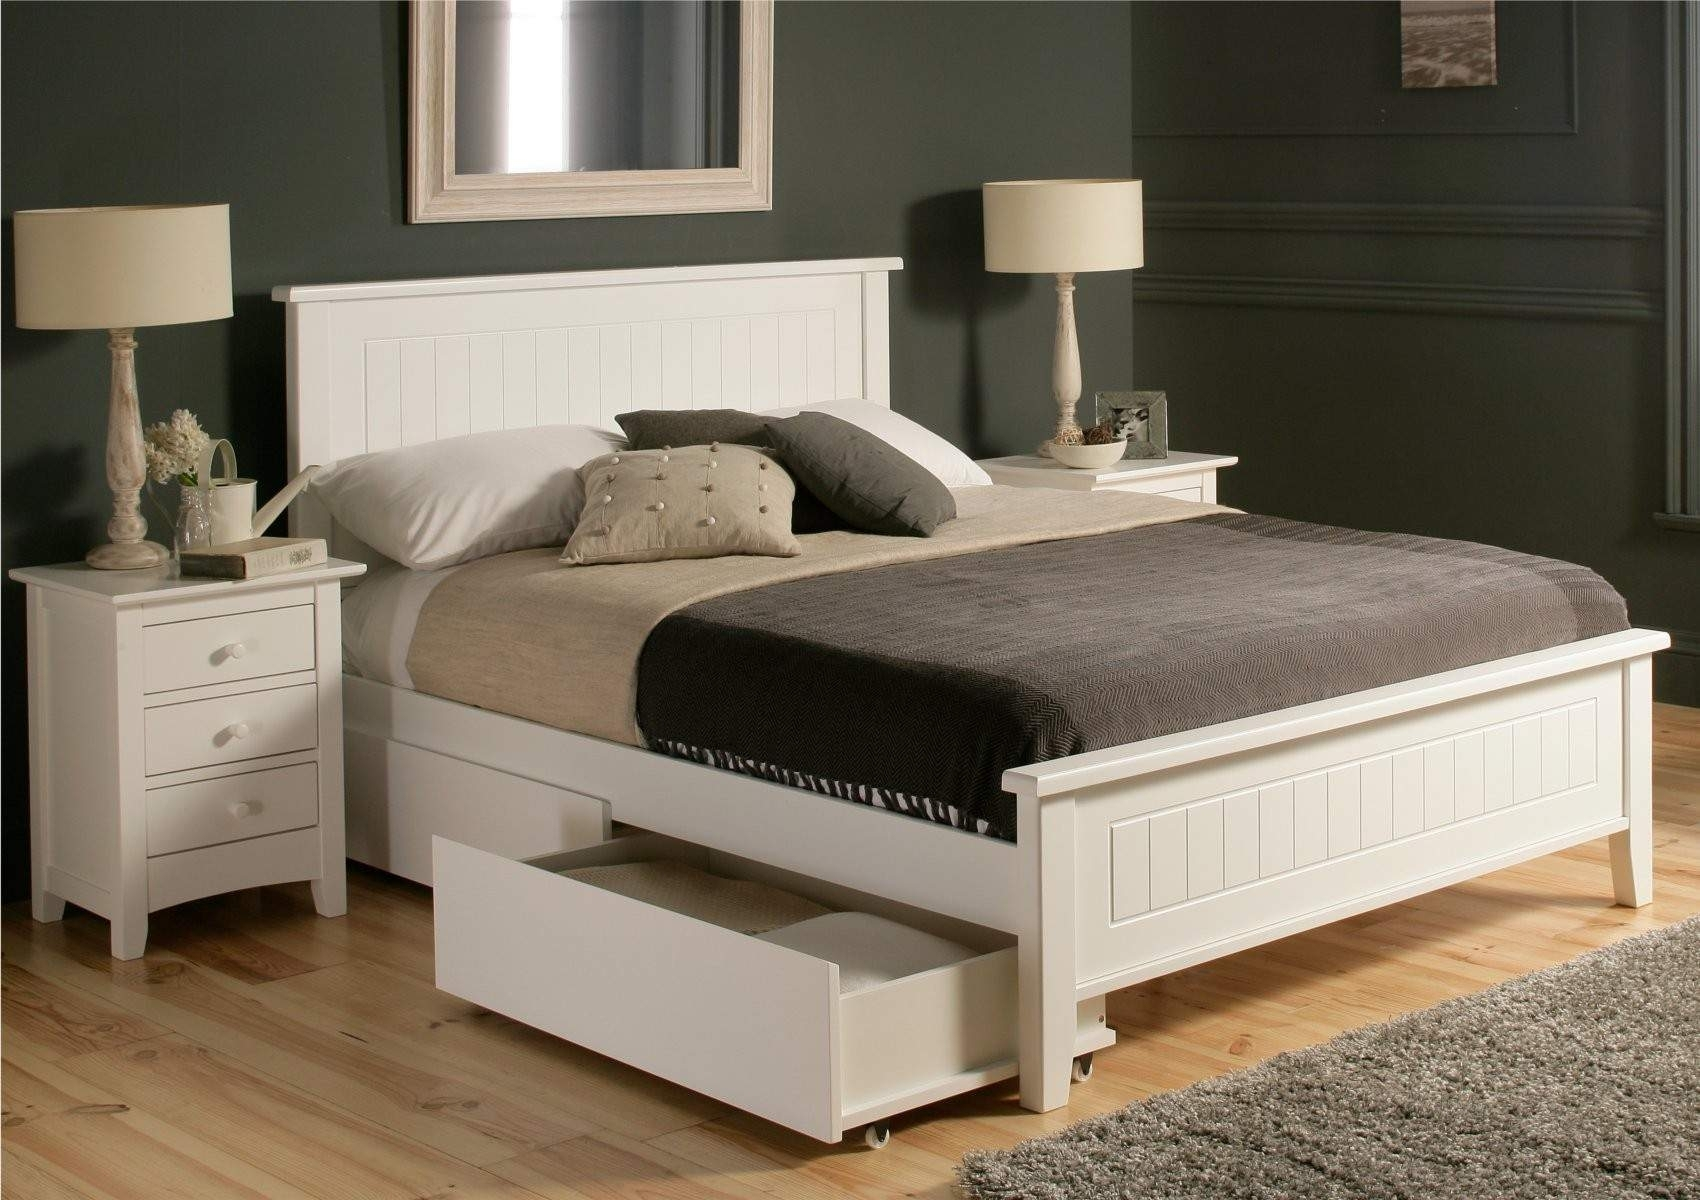 Queen Size Bed Frames With Storage Drawers